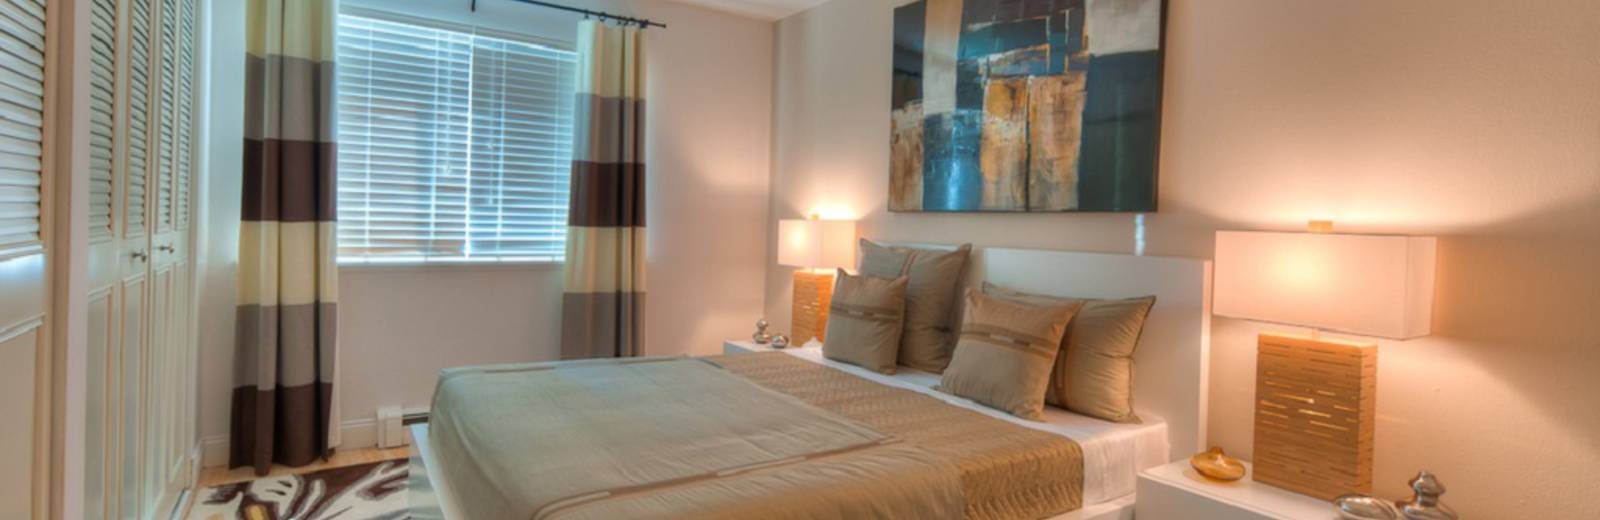 Rooms For Rent In Addison Il